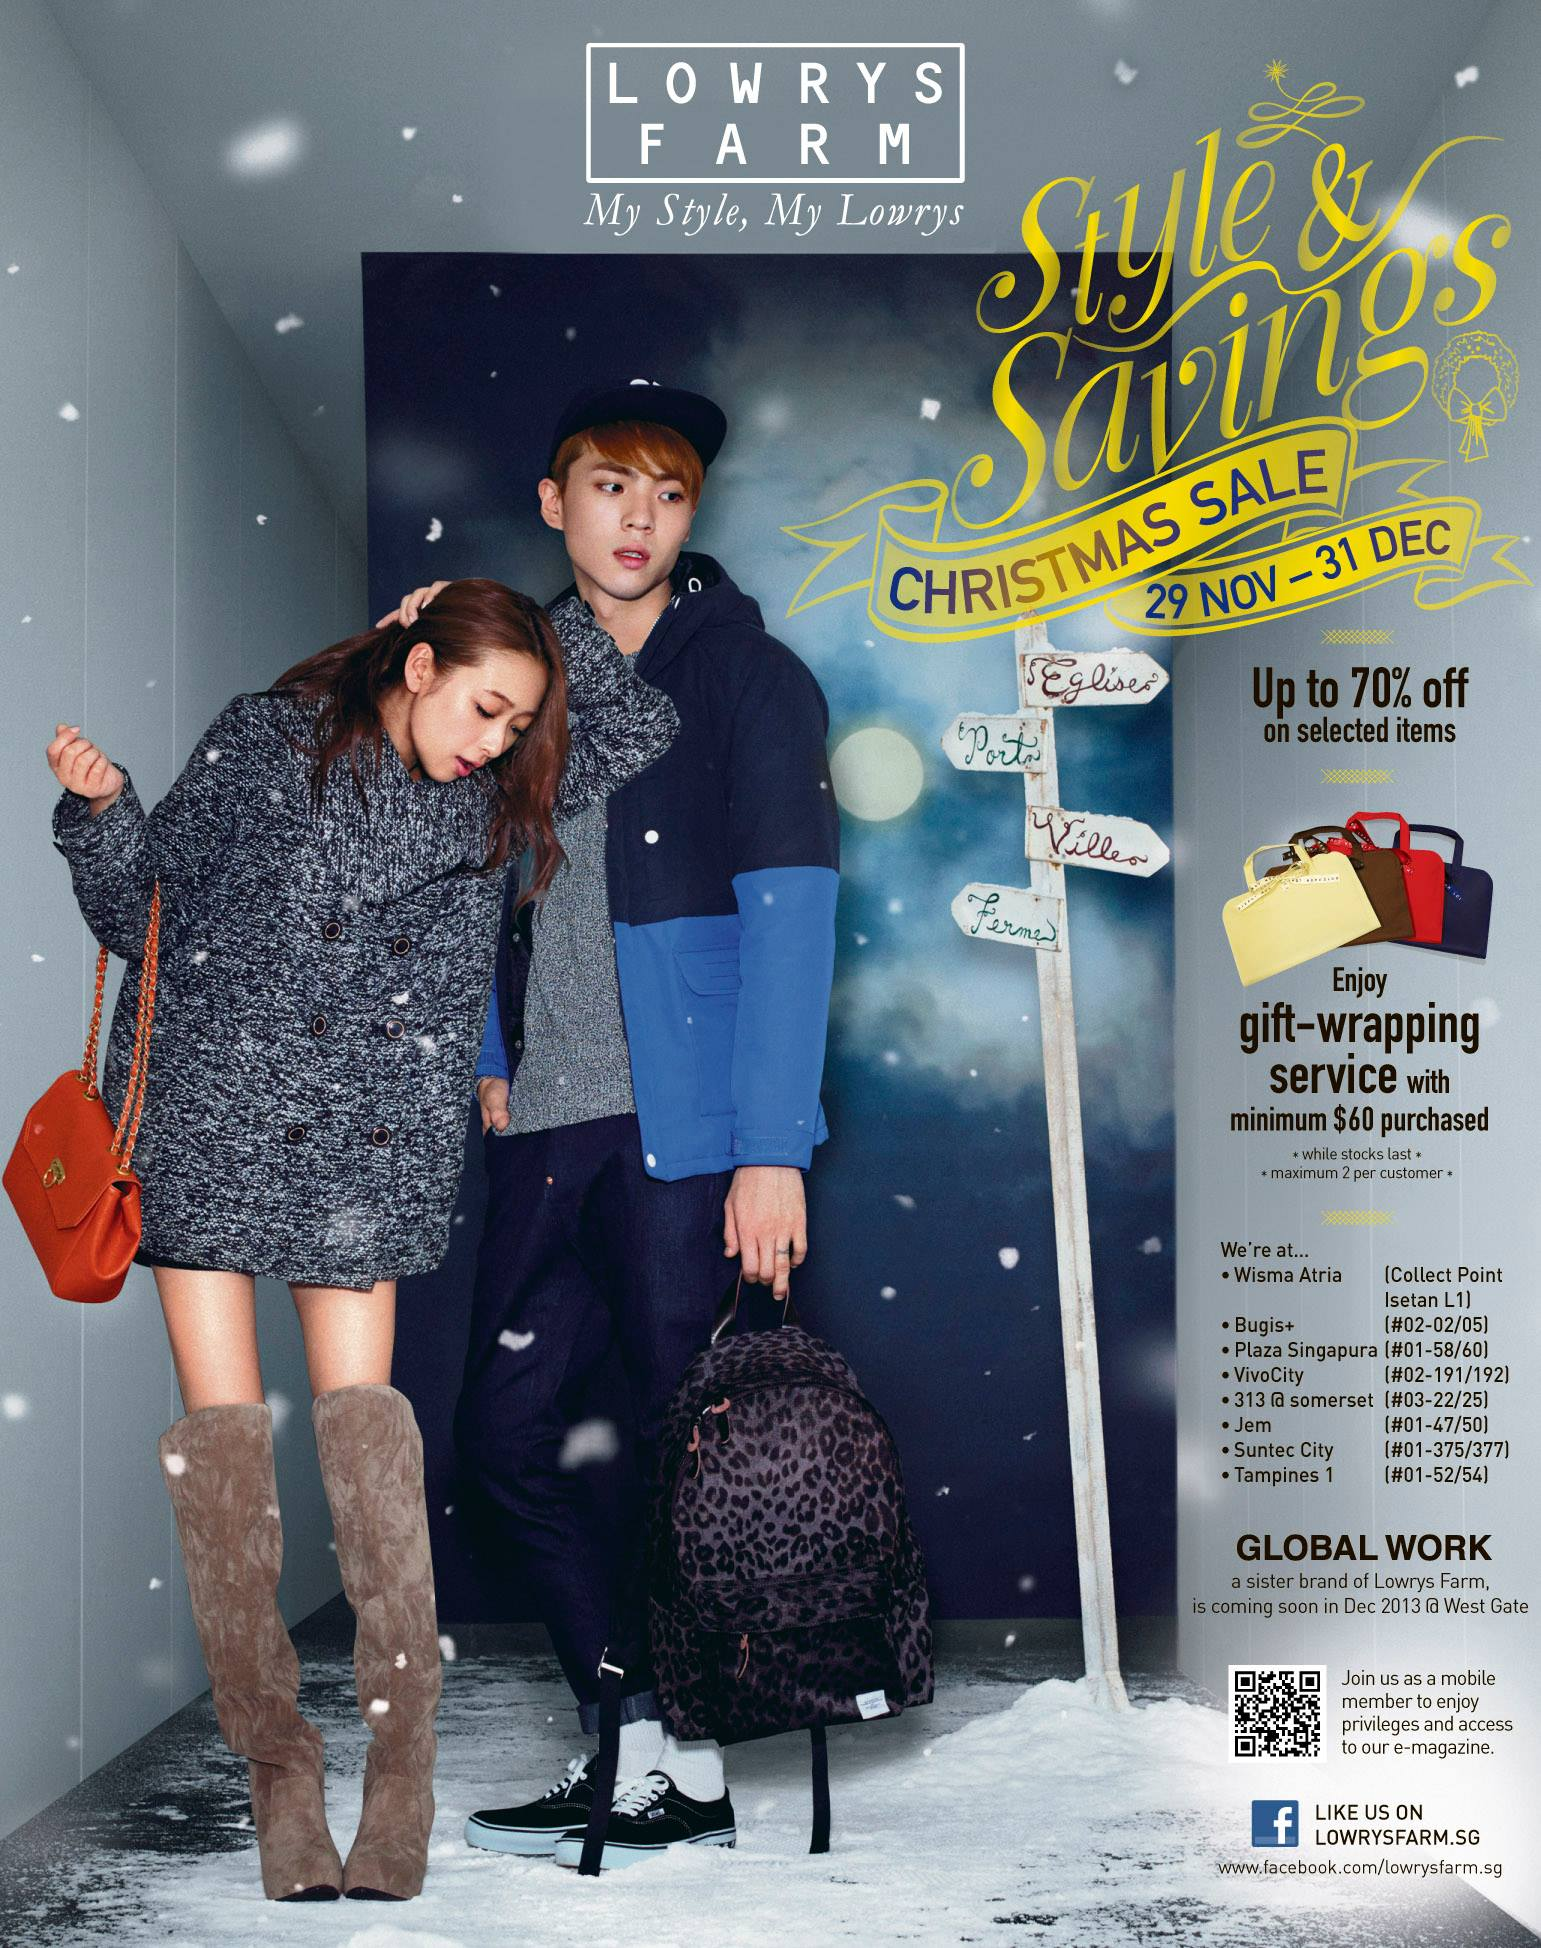 Lowrys Farm Style & Savings Christmas Sale December 2013: Up To 70% Off On Selected Items + Gift Wrapping